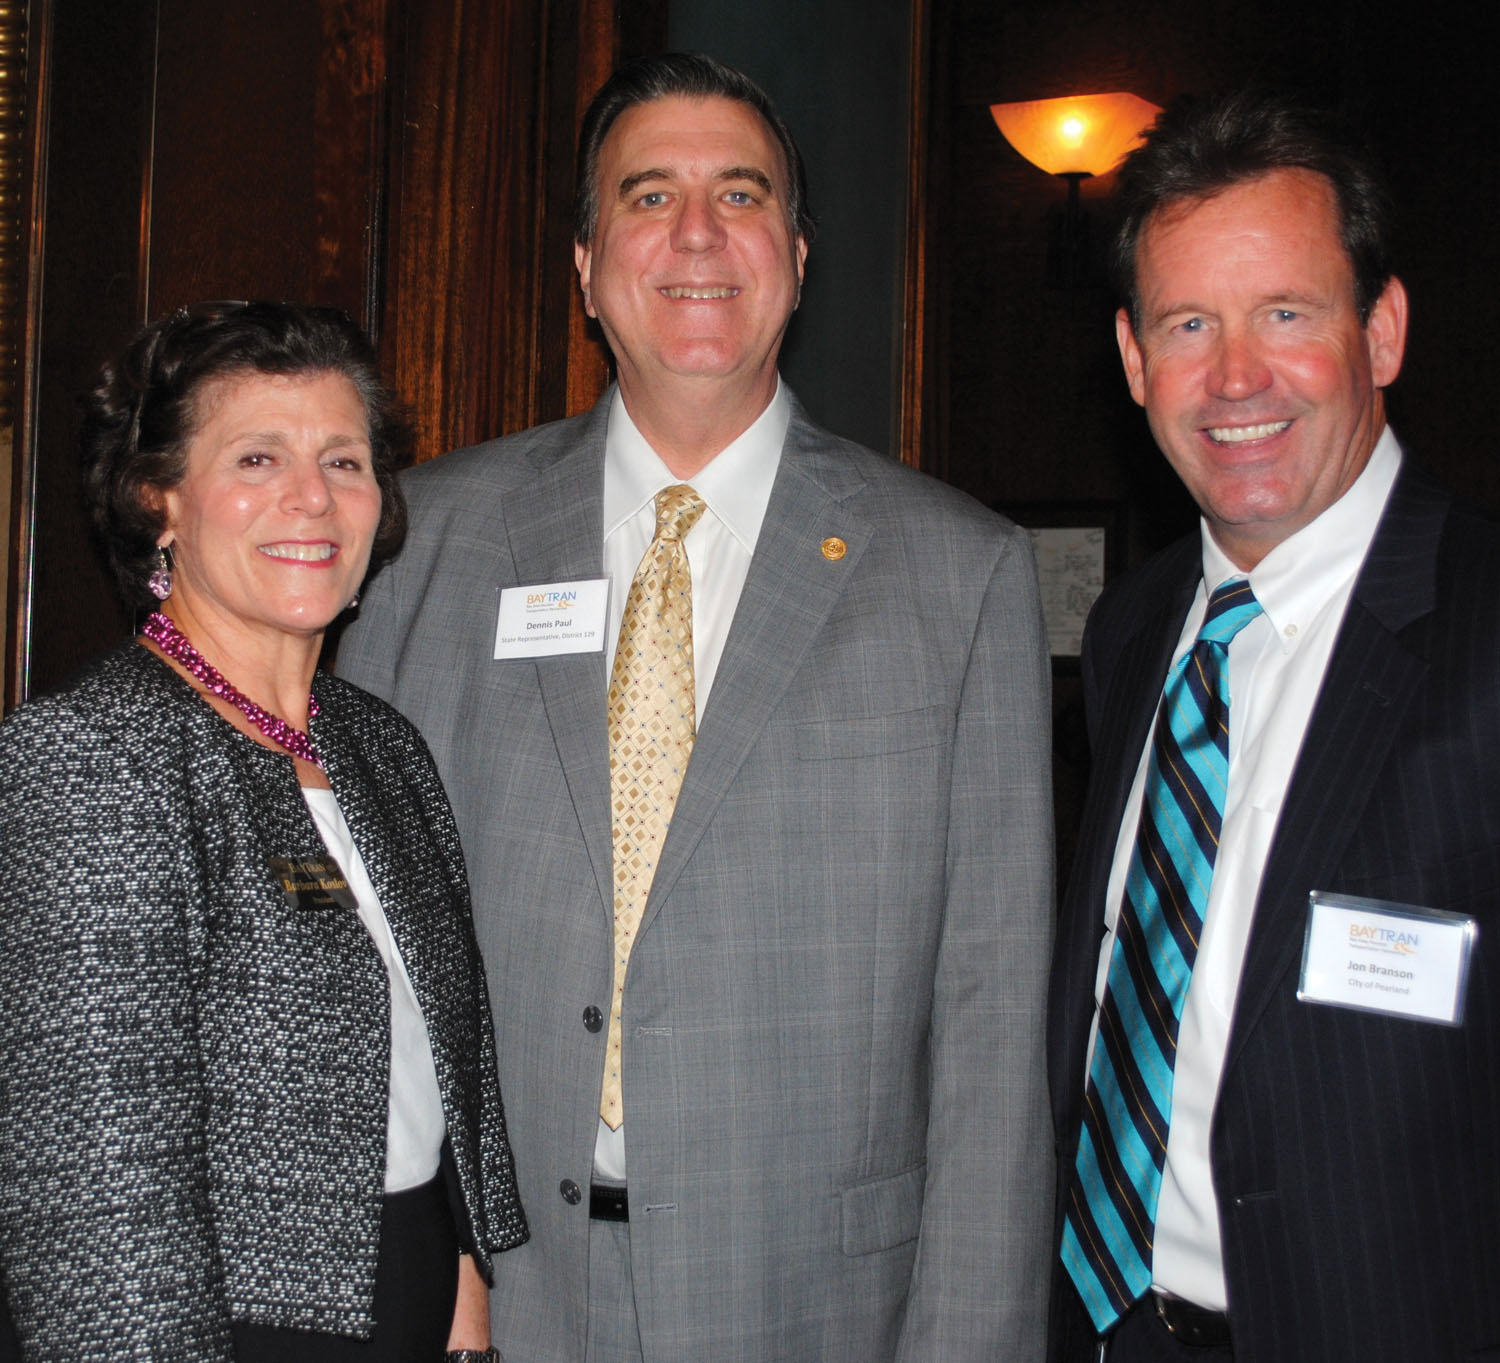 BayTran President Barbara Koslov and Chairman Jon Branson, right, welcome State Rep. Dennis Paul to the June 18 monthly luncheon at Cullen's Upscale Grille.